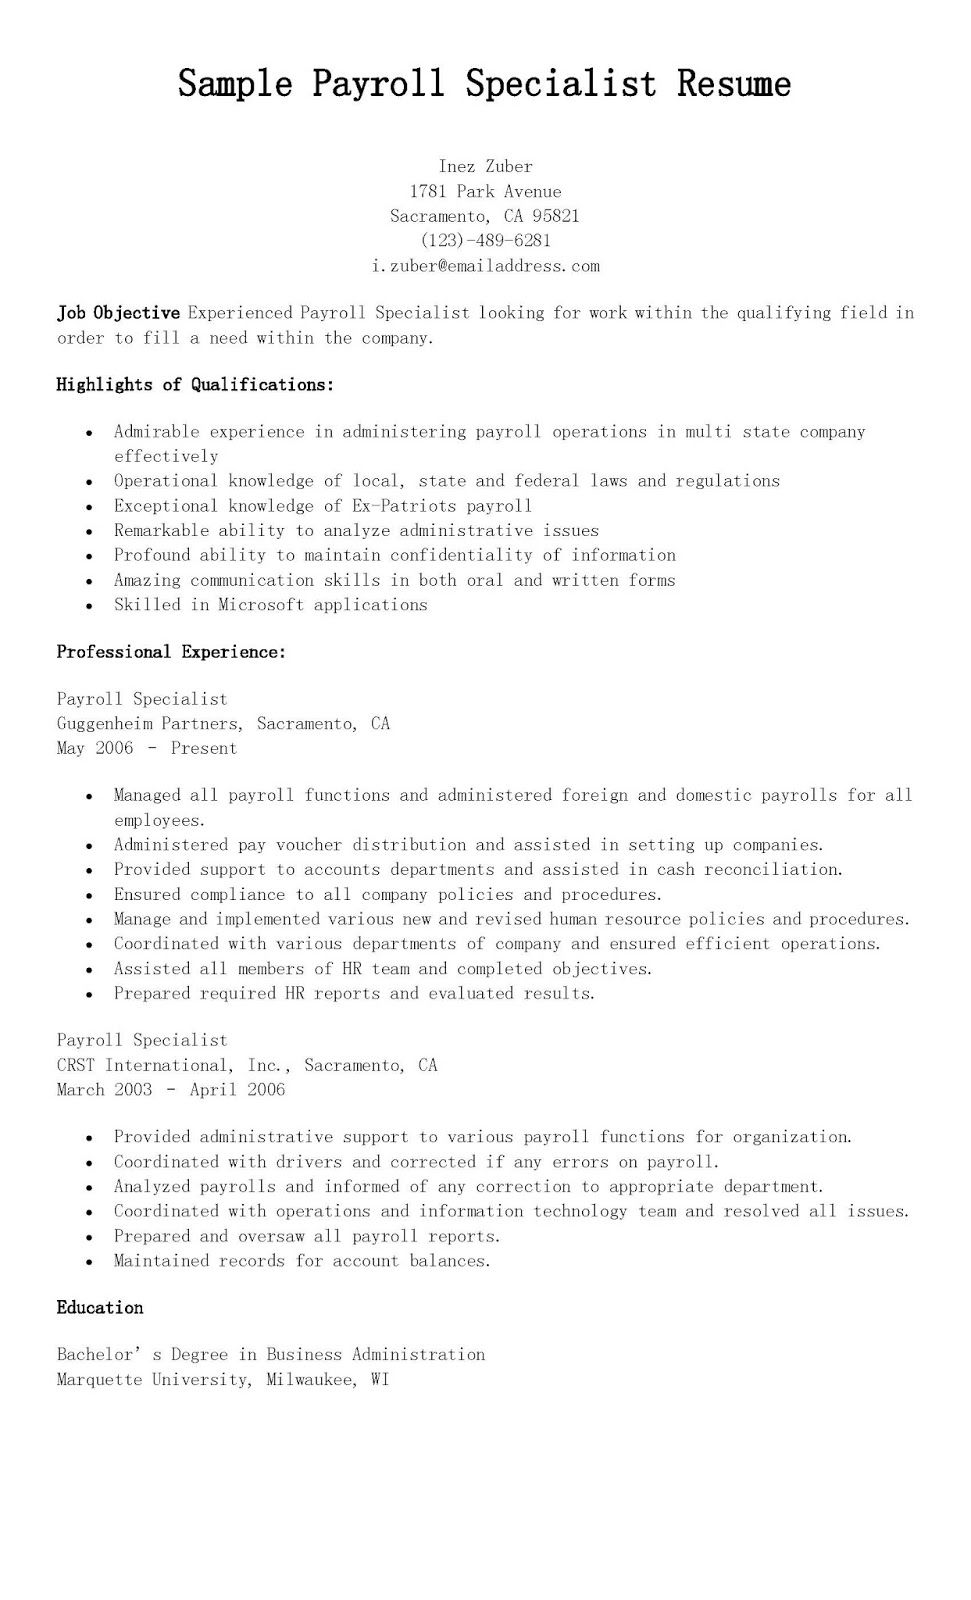 Sample Payroll Specialist Resume  resame  Resume Professional resume Cover letter for resume